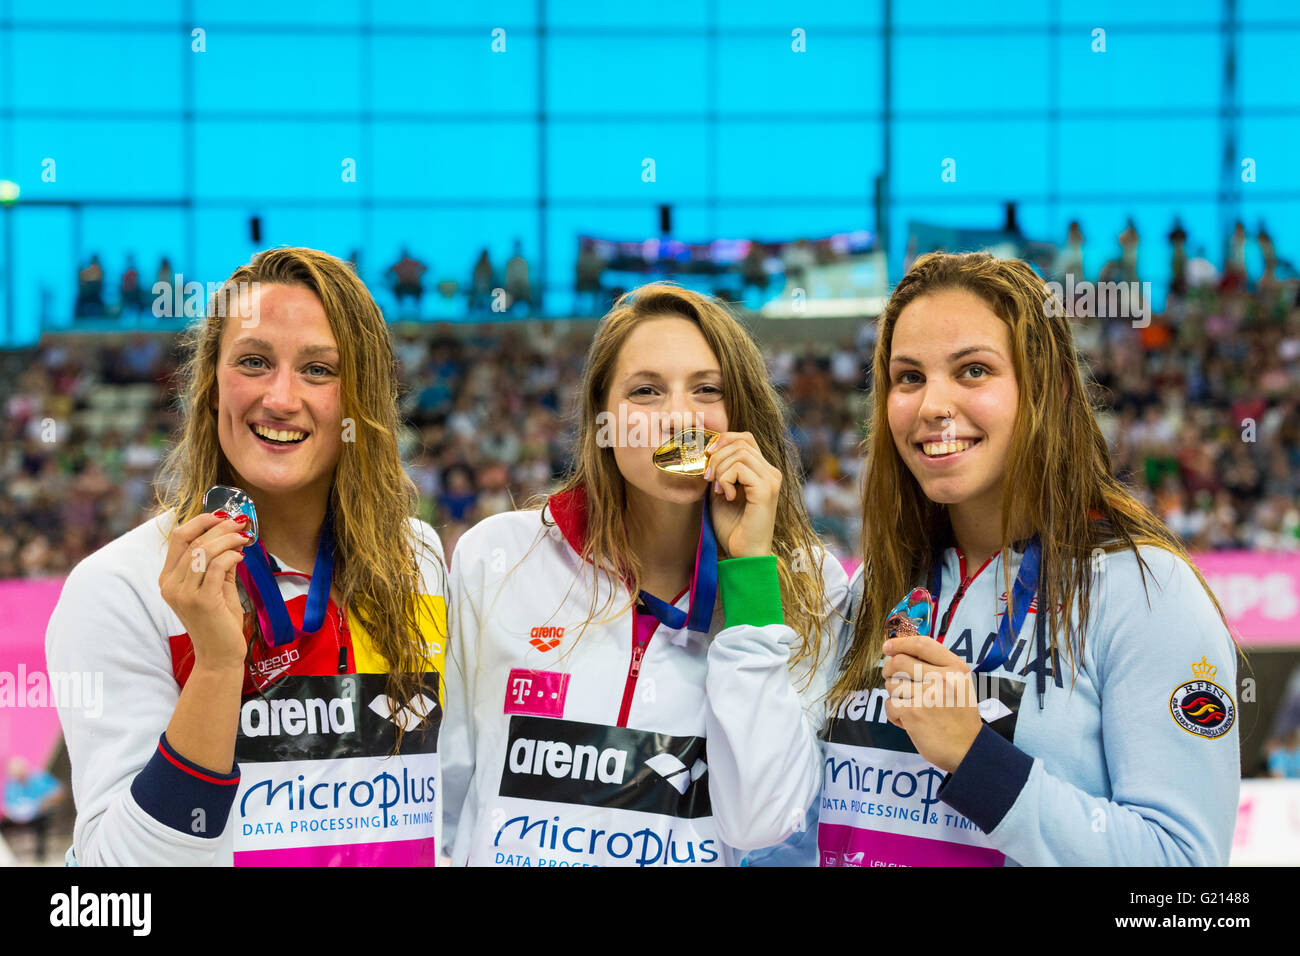 Aquatics Centre, London, UK, 21st May 2016. European Swimming Championships. Women's 1500m Freestyle final. - Stock Image